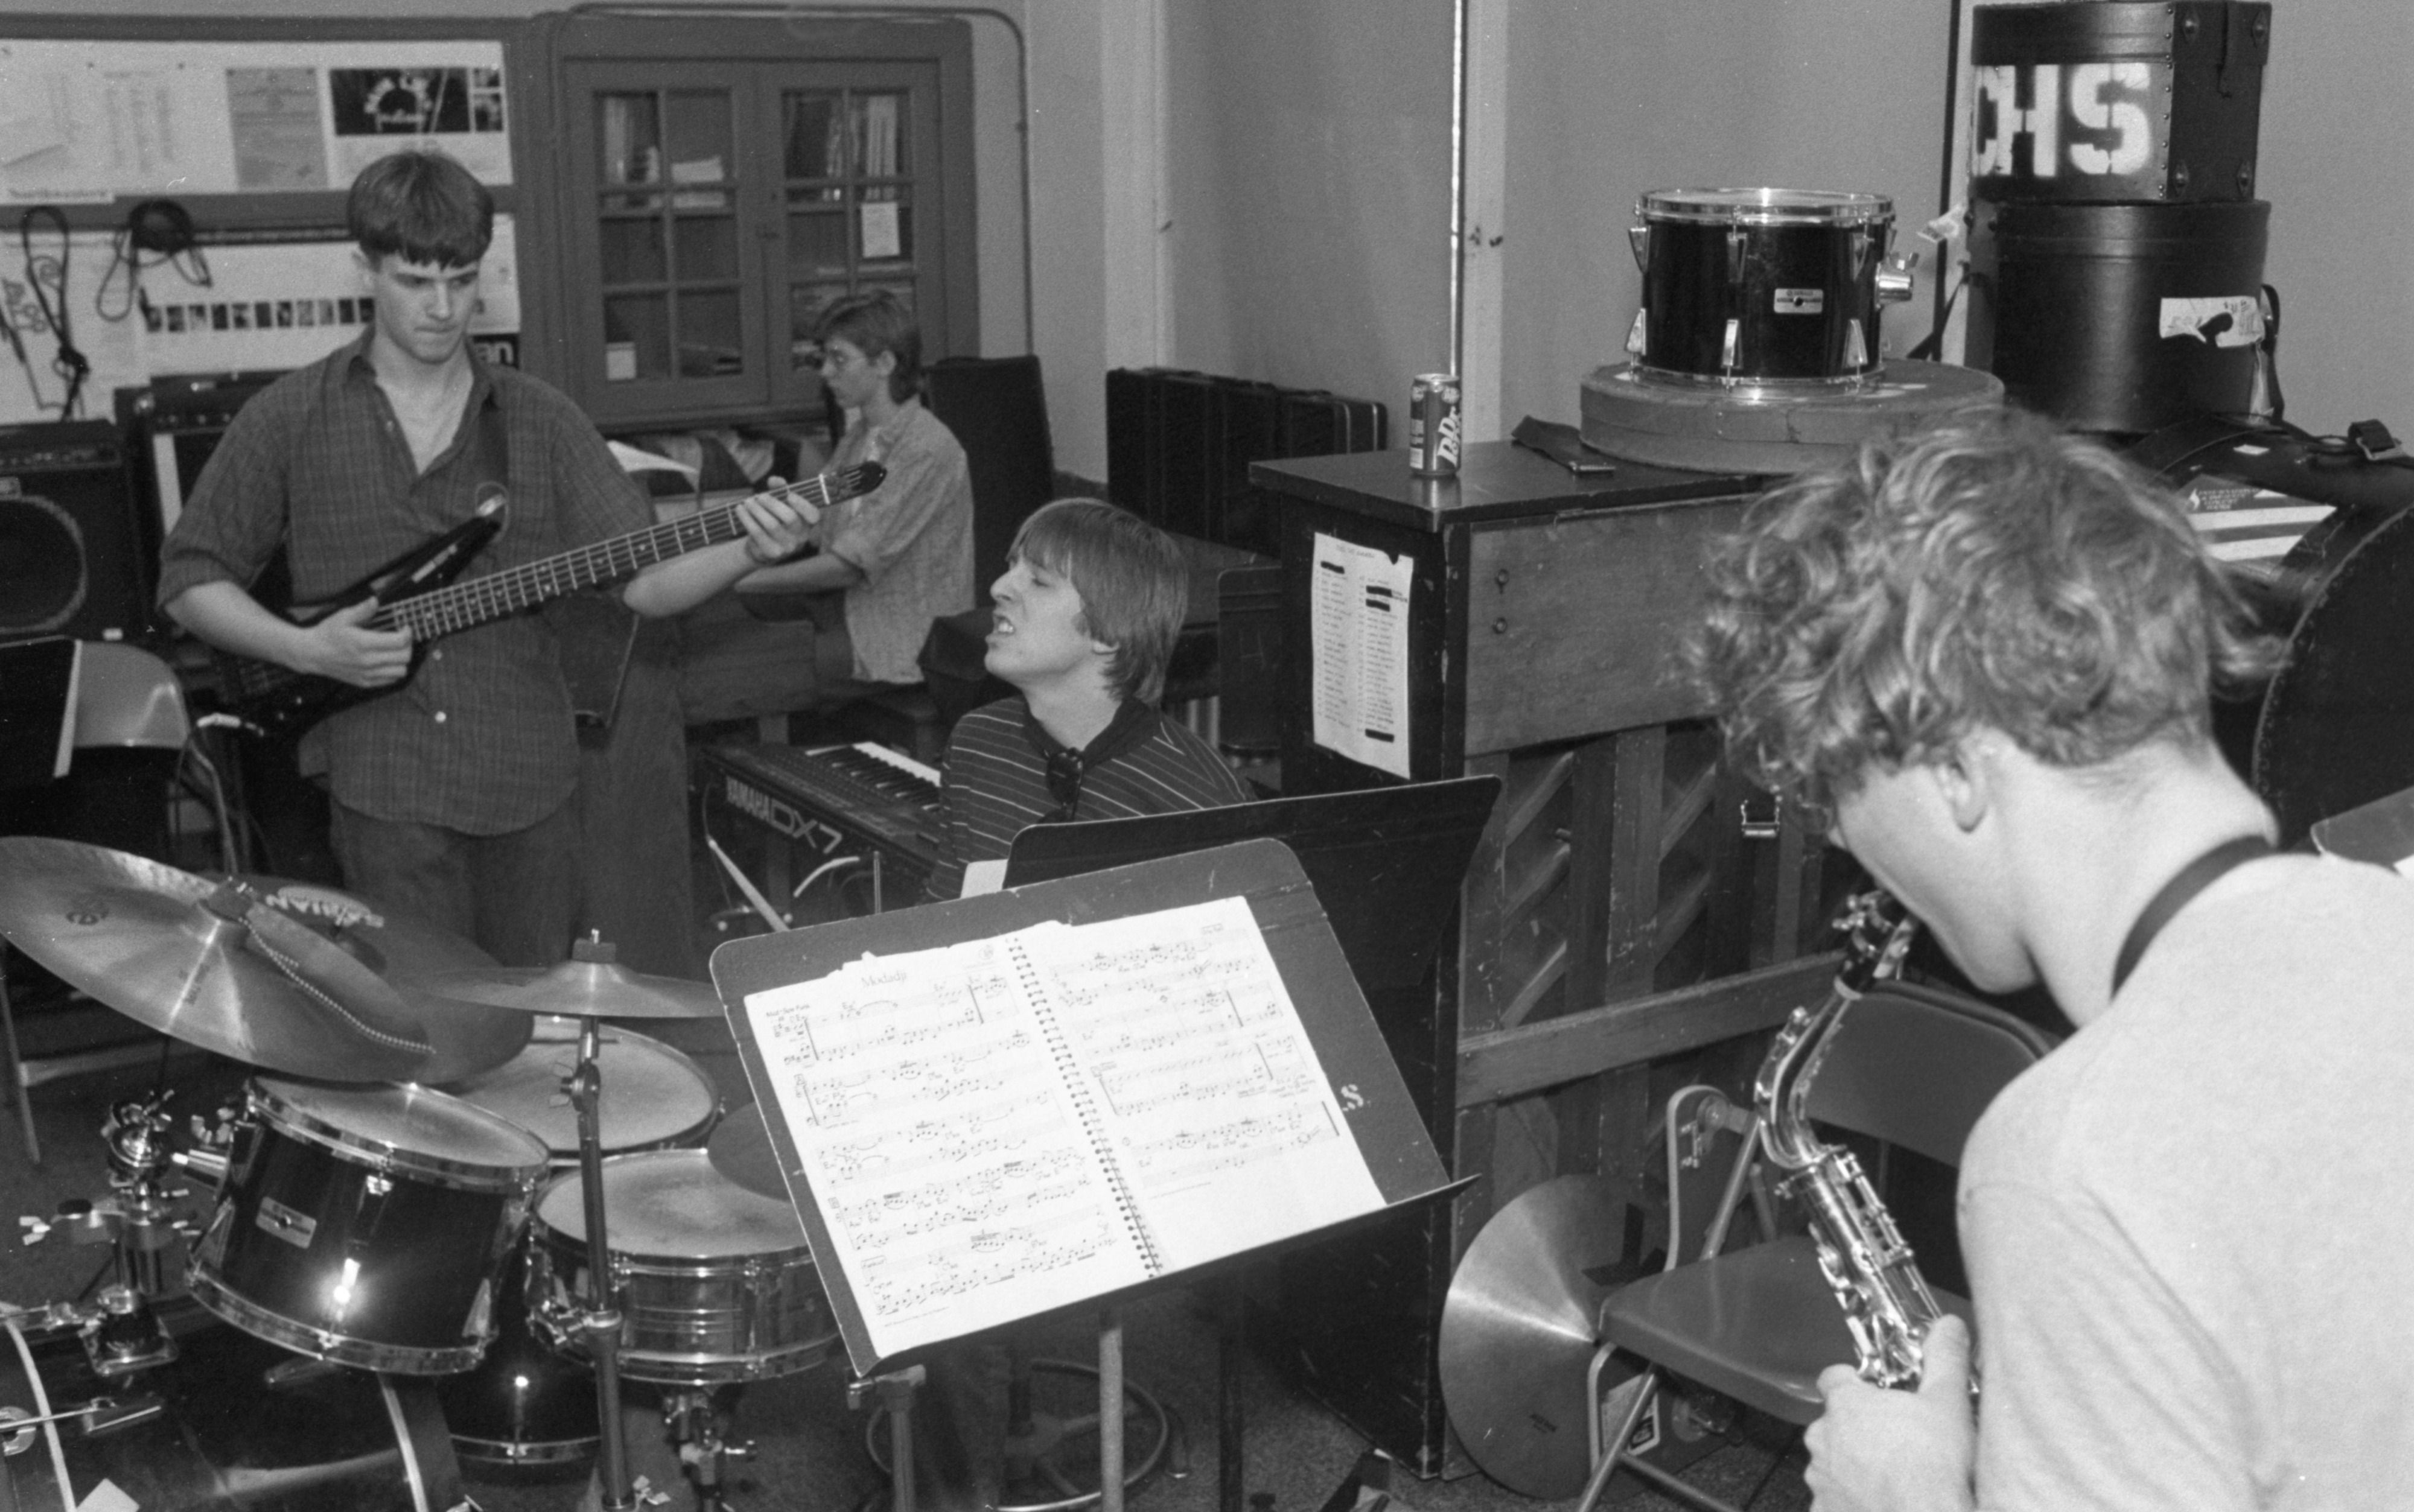 Community High School's 1:45 Jazz Ensemble During A Practice Session, March 1990 image